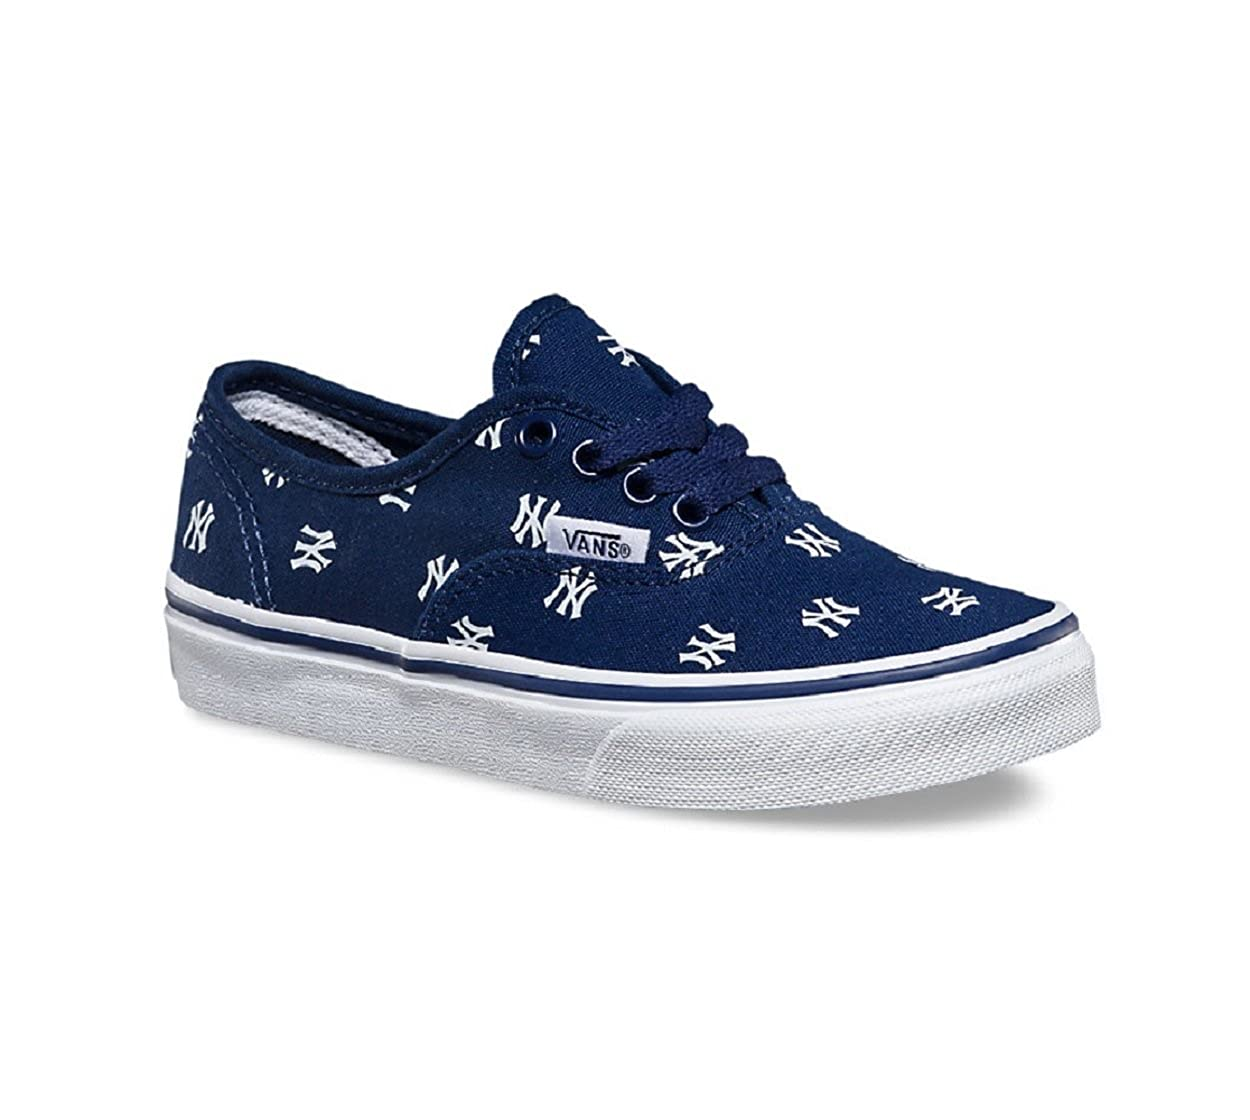 1b9b8d0515 Amazon.com | Vans Men's X MLB Authentic (MLB) New York/Yankees/Navy  Skateboarding Shoes (US 10.5c) | Skateboarding